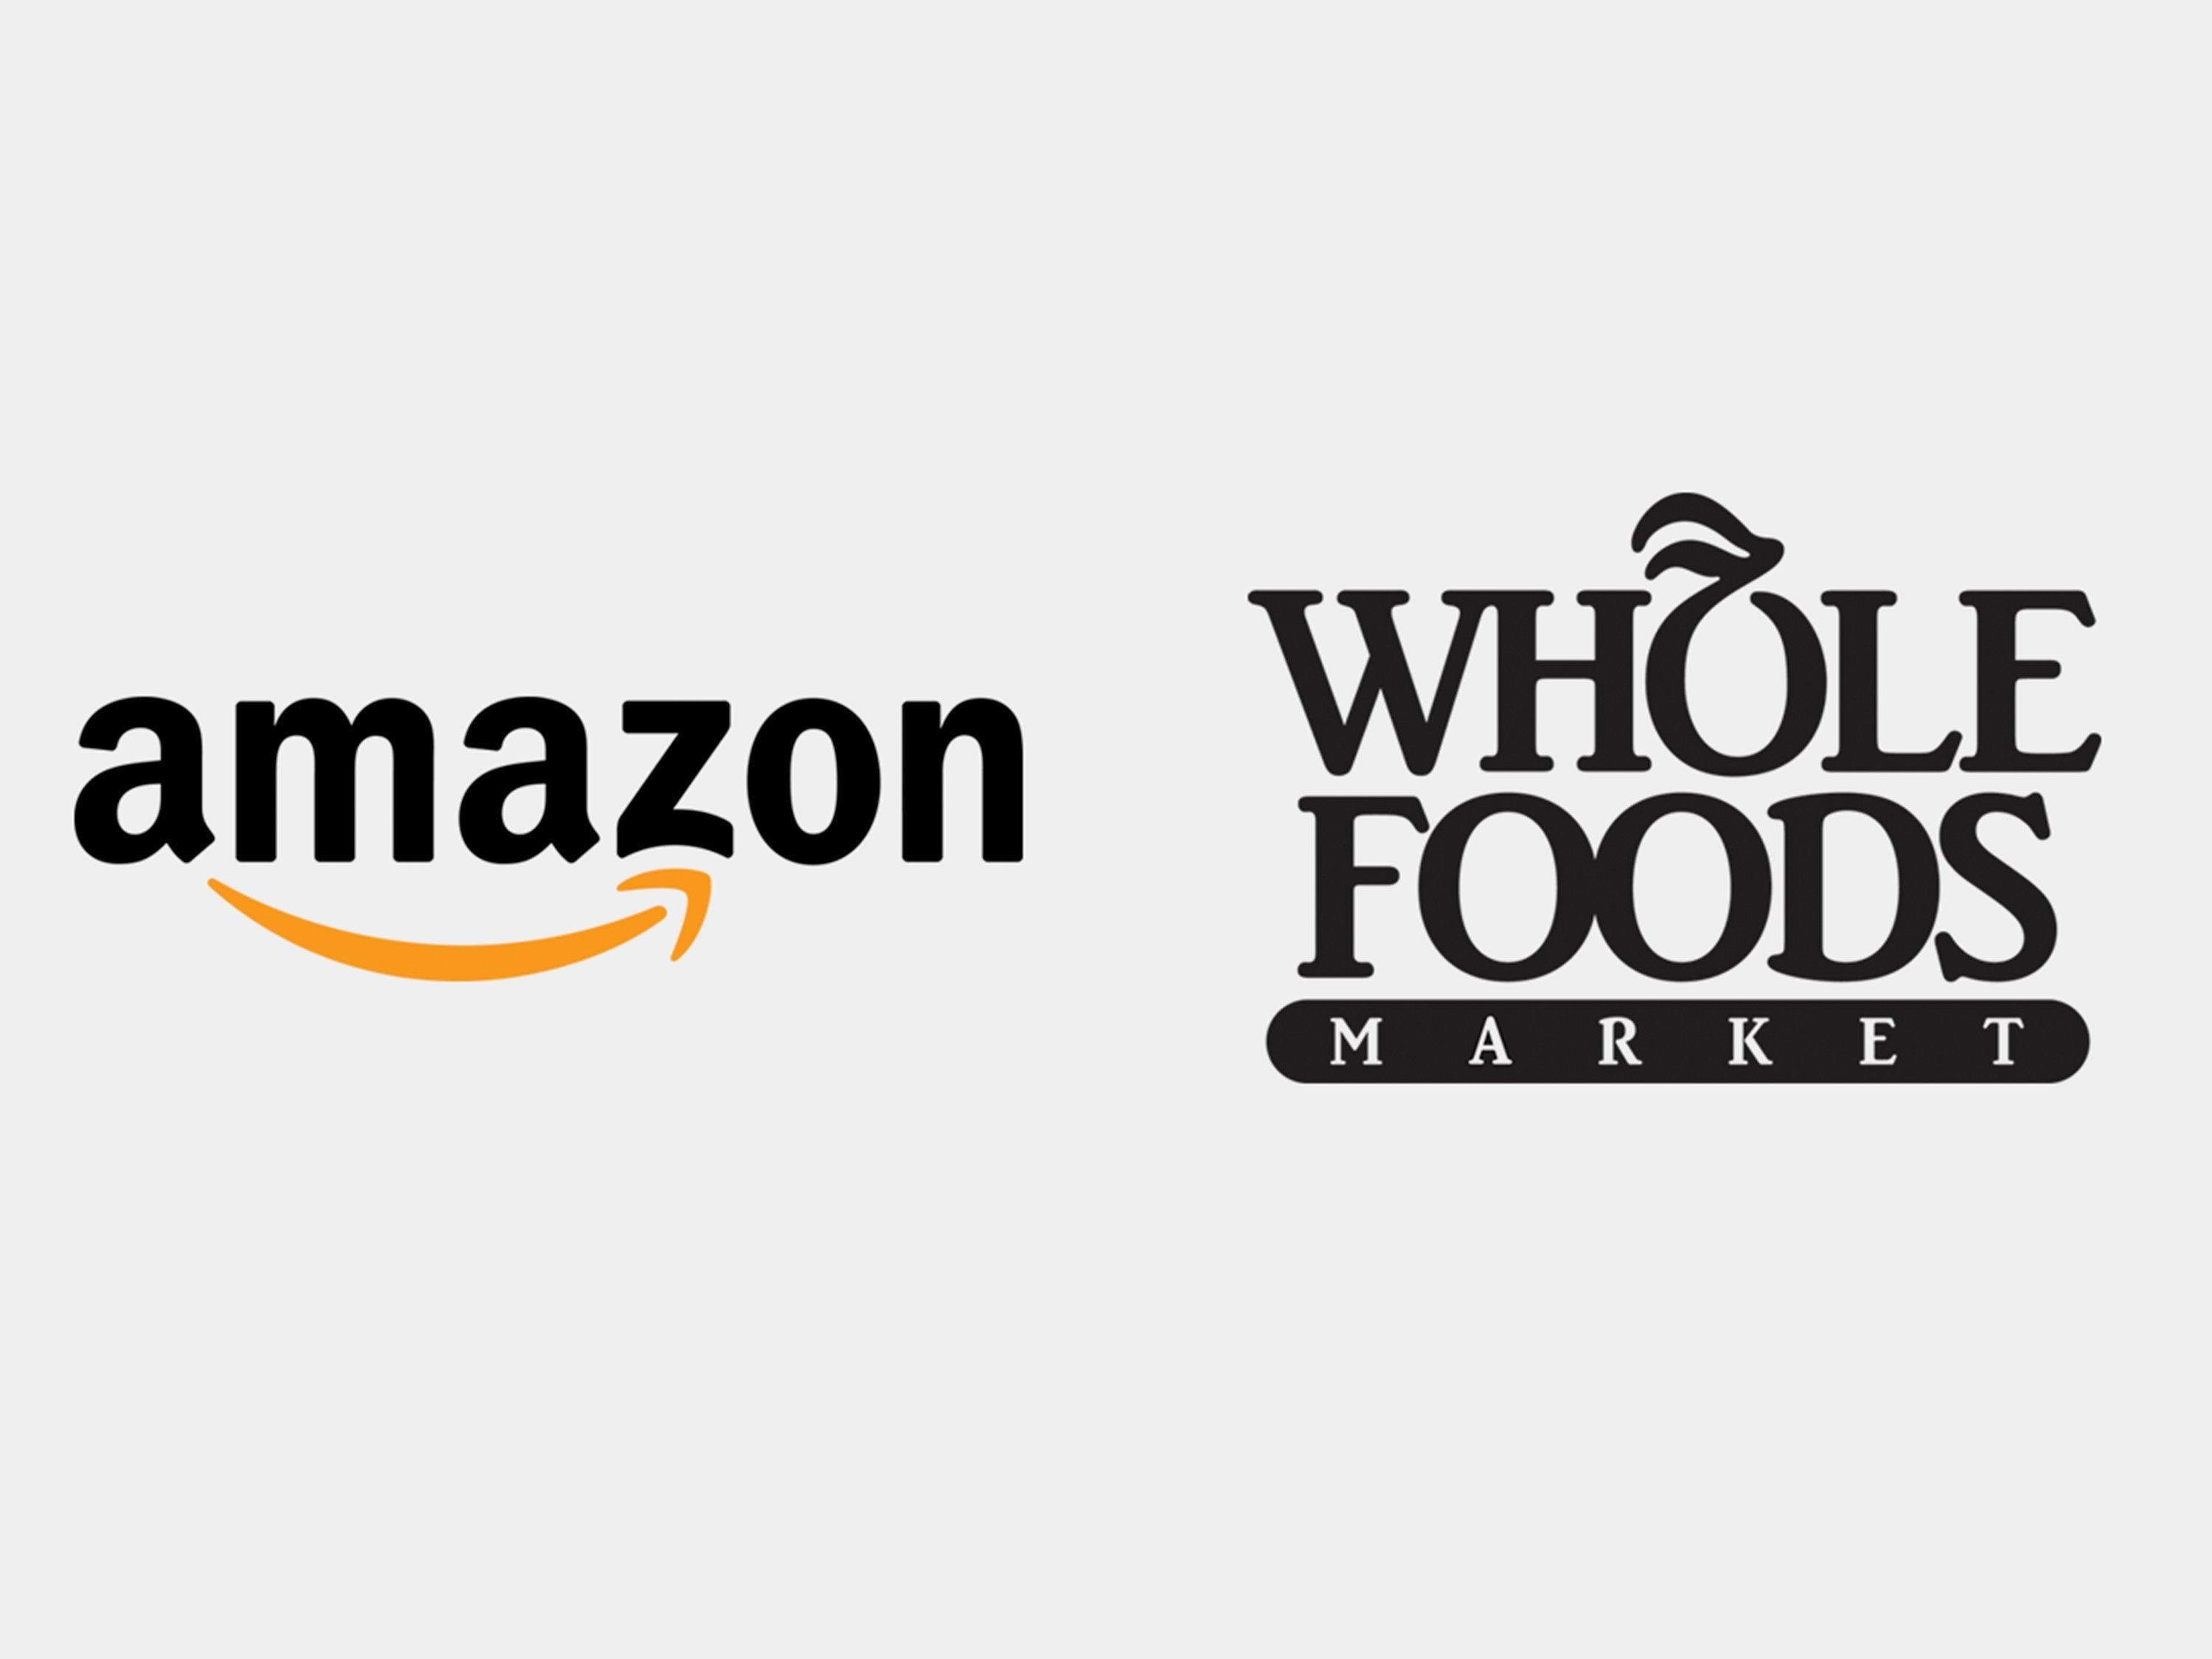 Amazon is unleashing its powerful delivery service on Whole Foods.